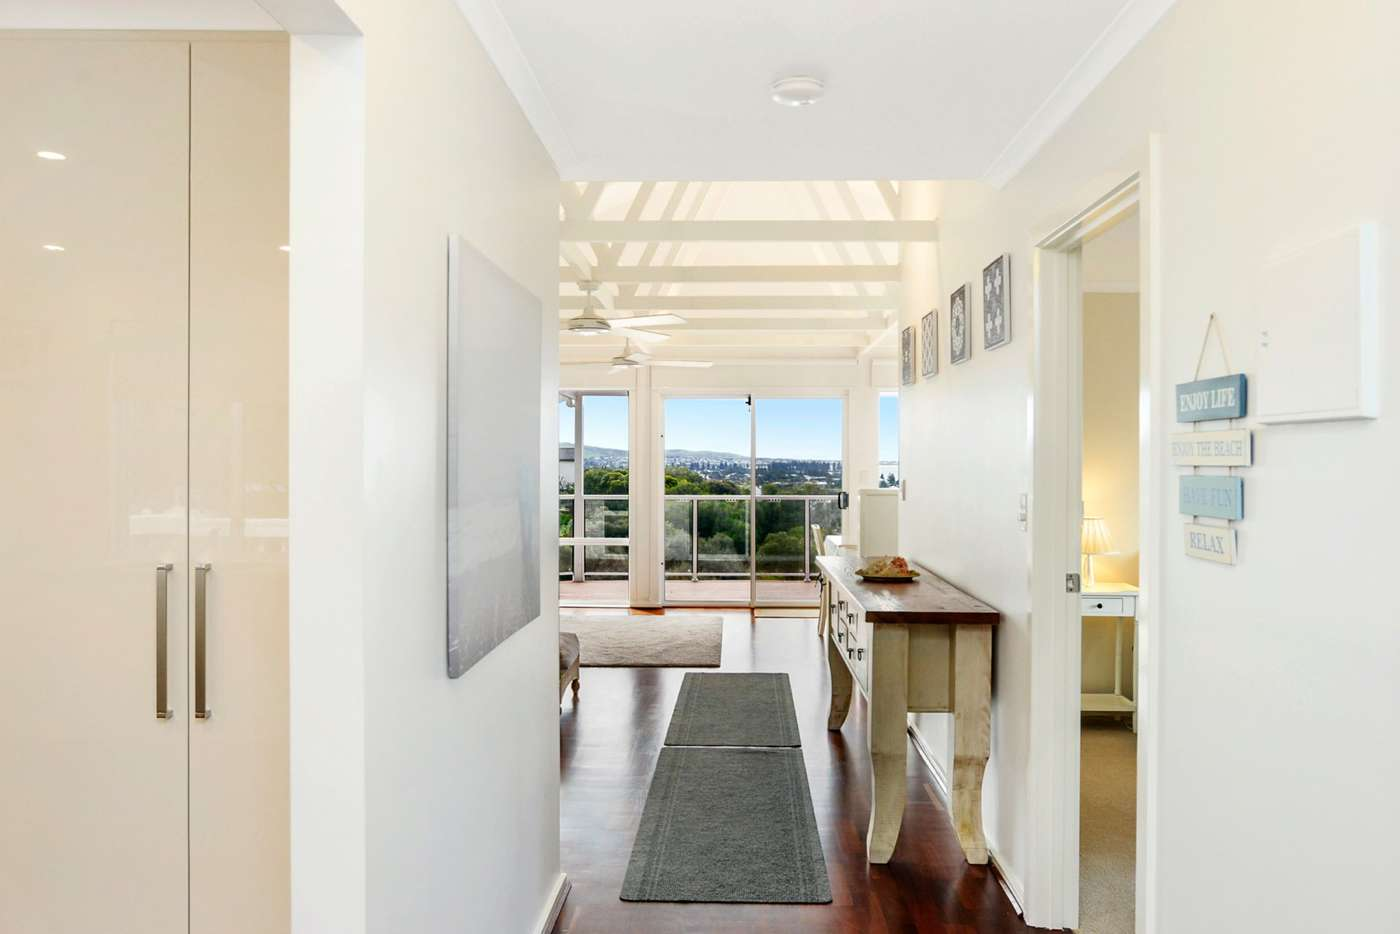 Seventh view of Homely house listing, 40 Cakebread Road, Encounter Bay SA 5211